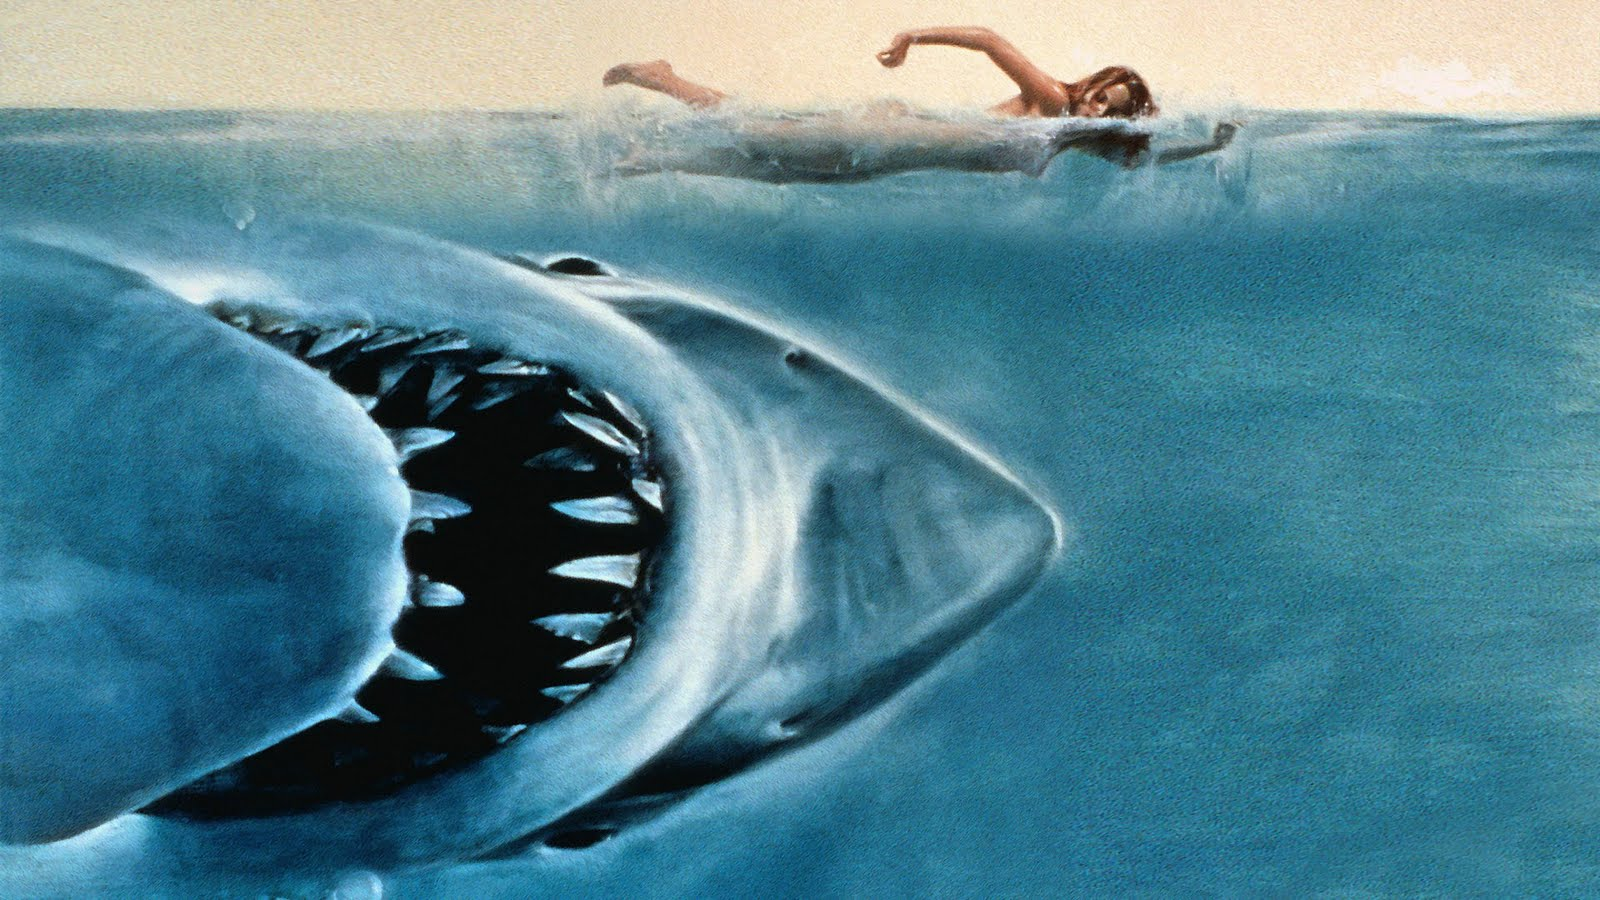 You Will Be Shocked To See This List Of Horror Movies That Are Based On Real Life Events!